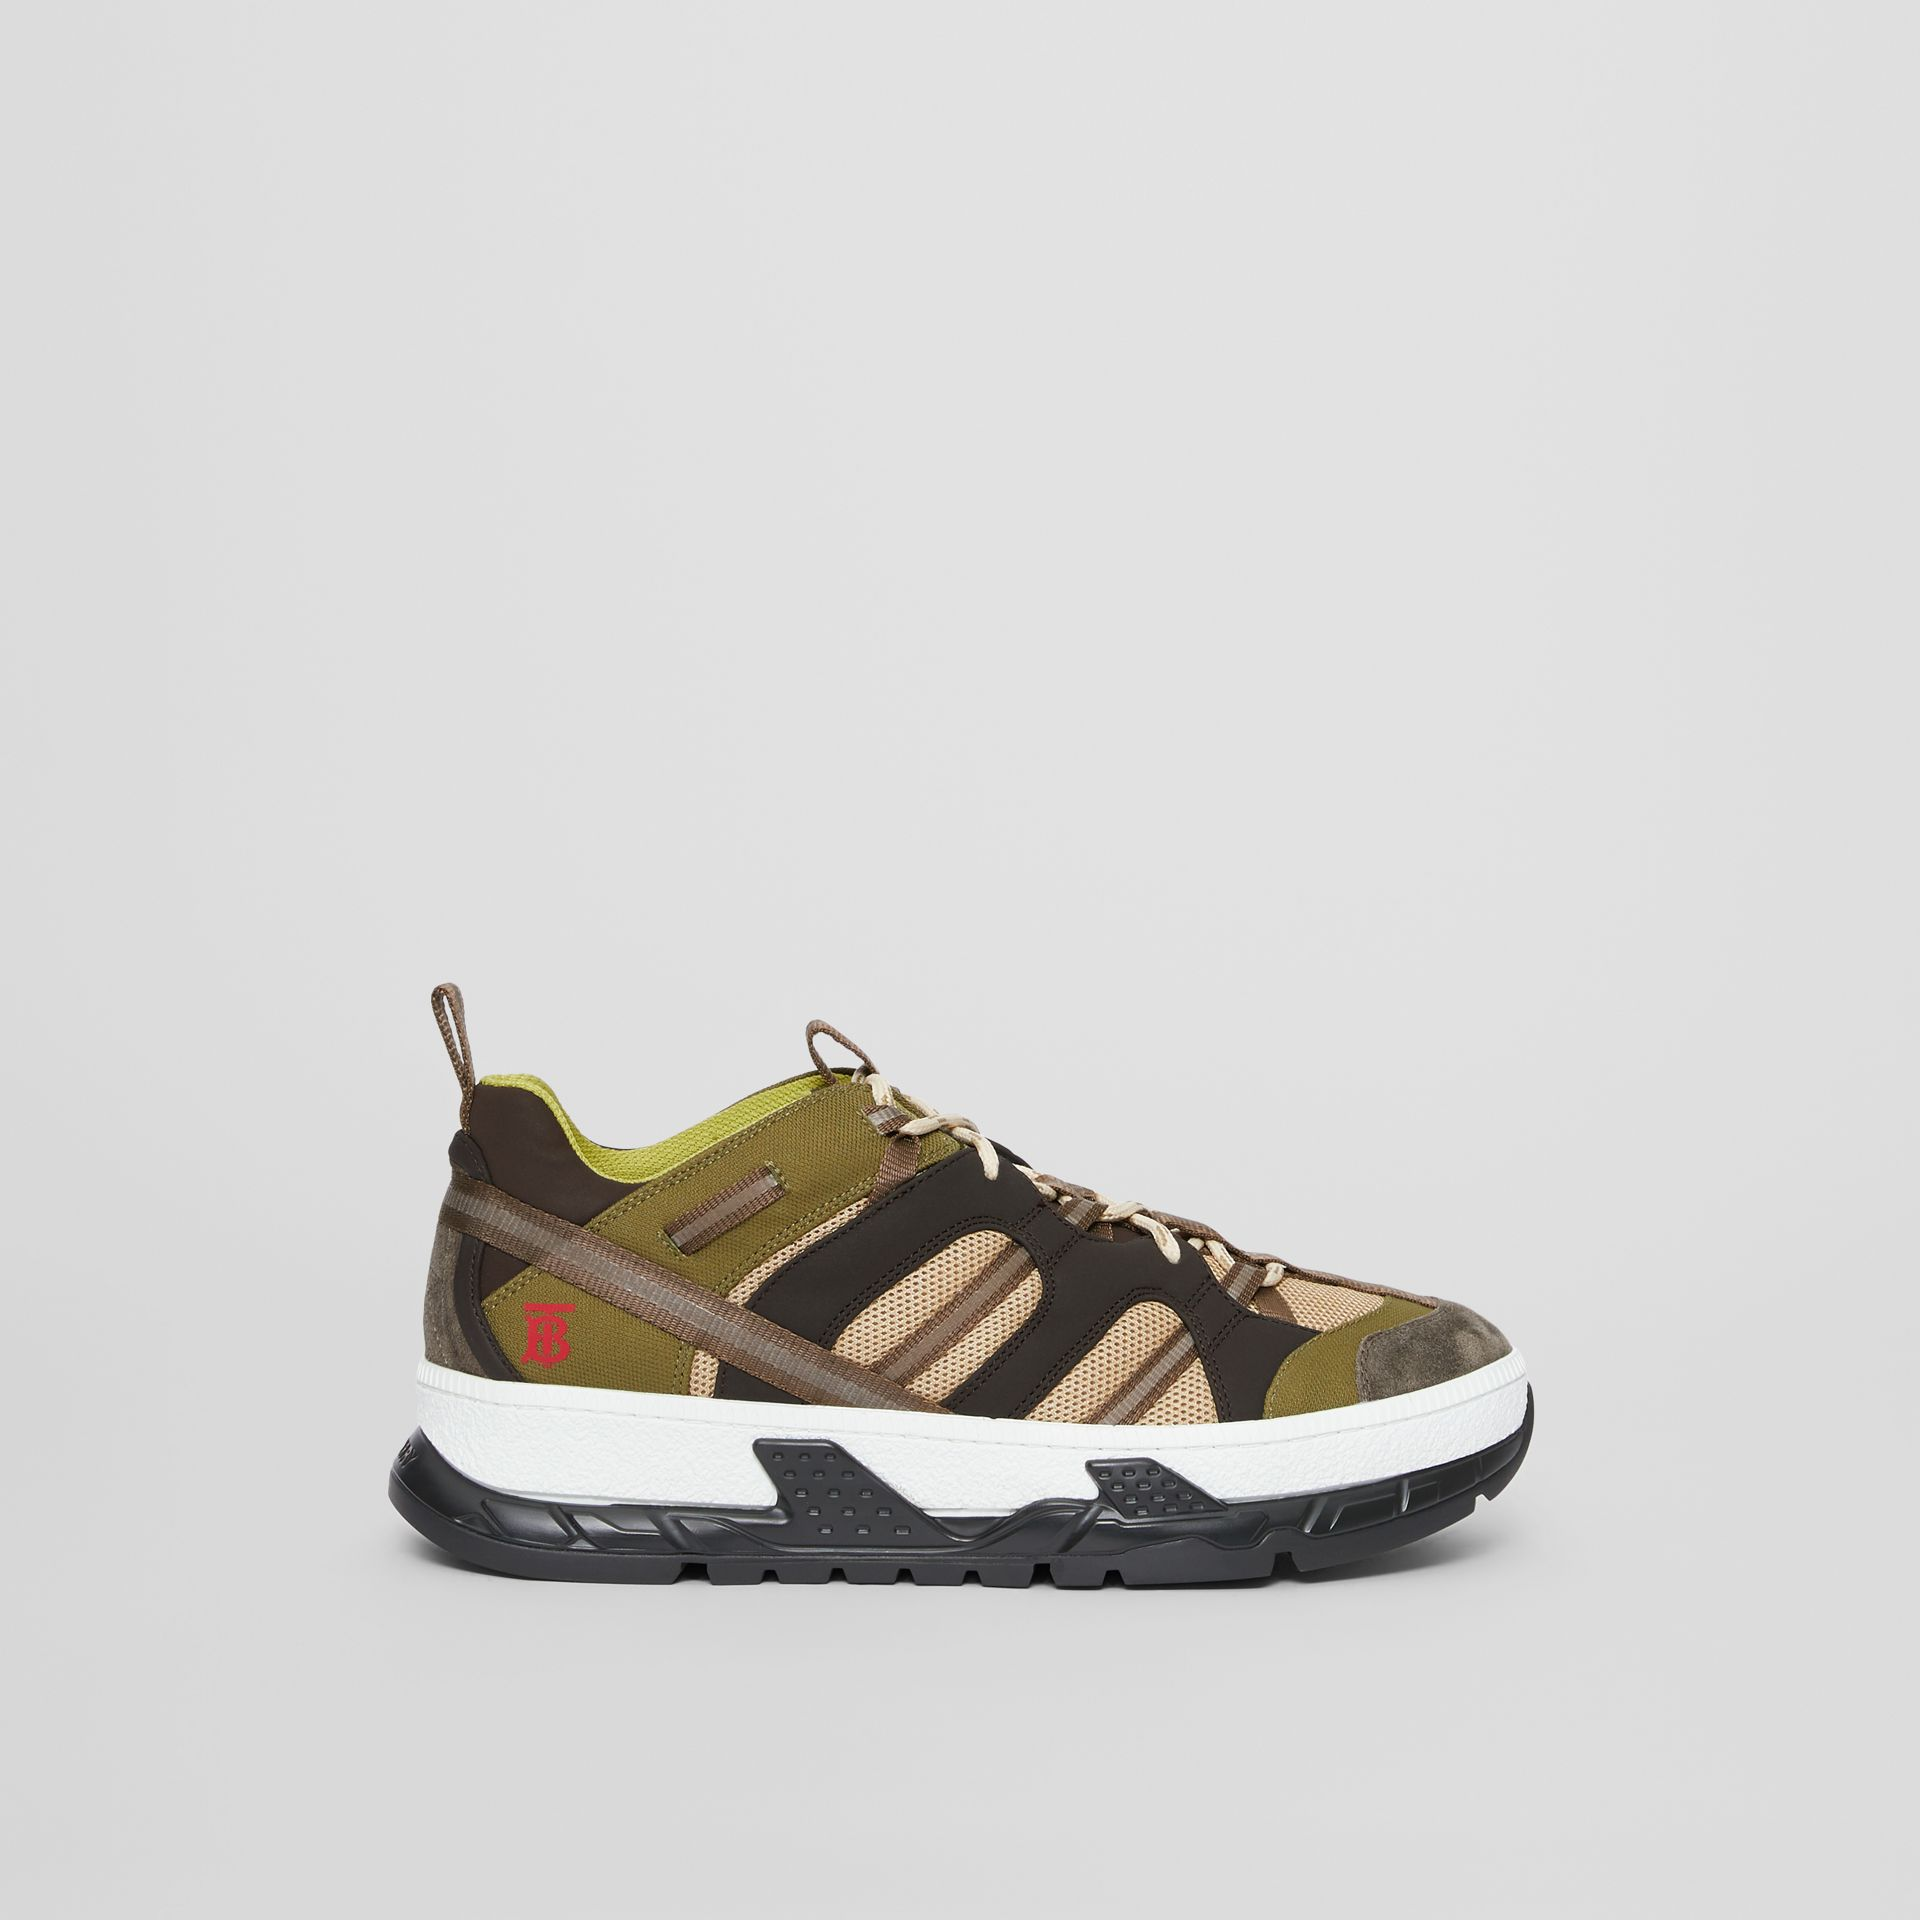 Mesh and Suede Union Sneakers in Khaki / Brown - Men | Burberry - gallery image 4